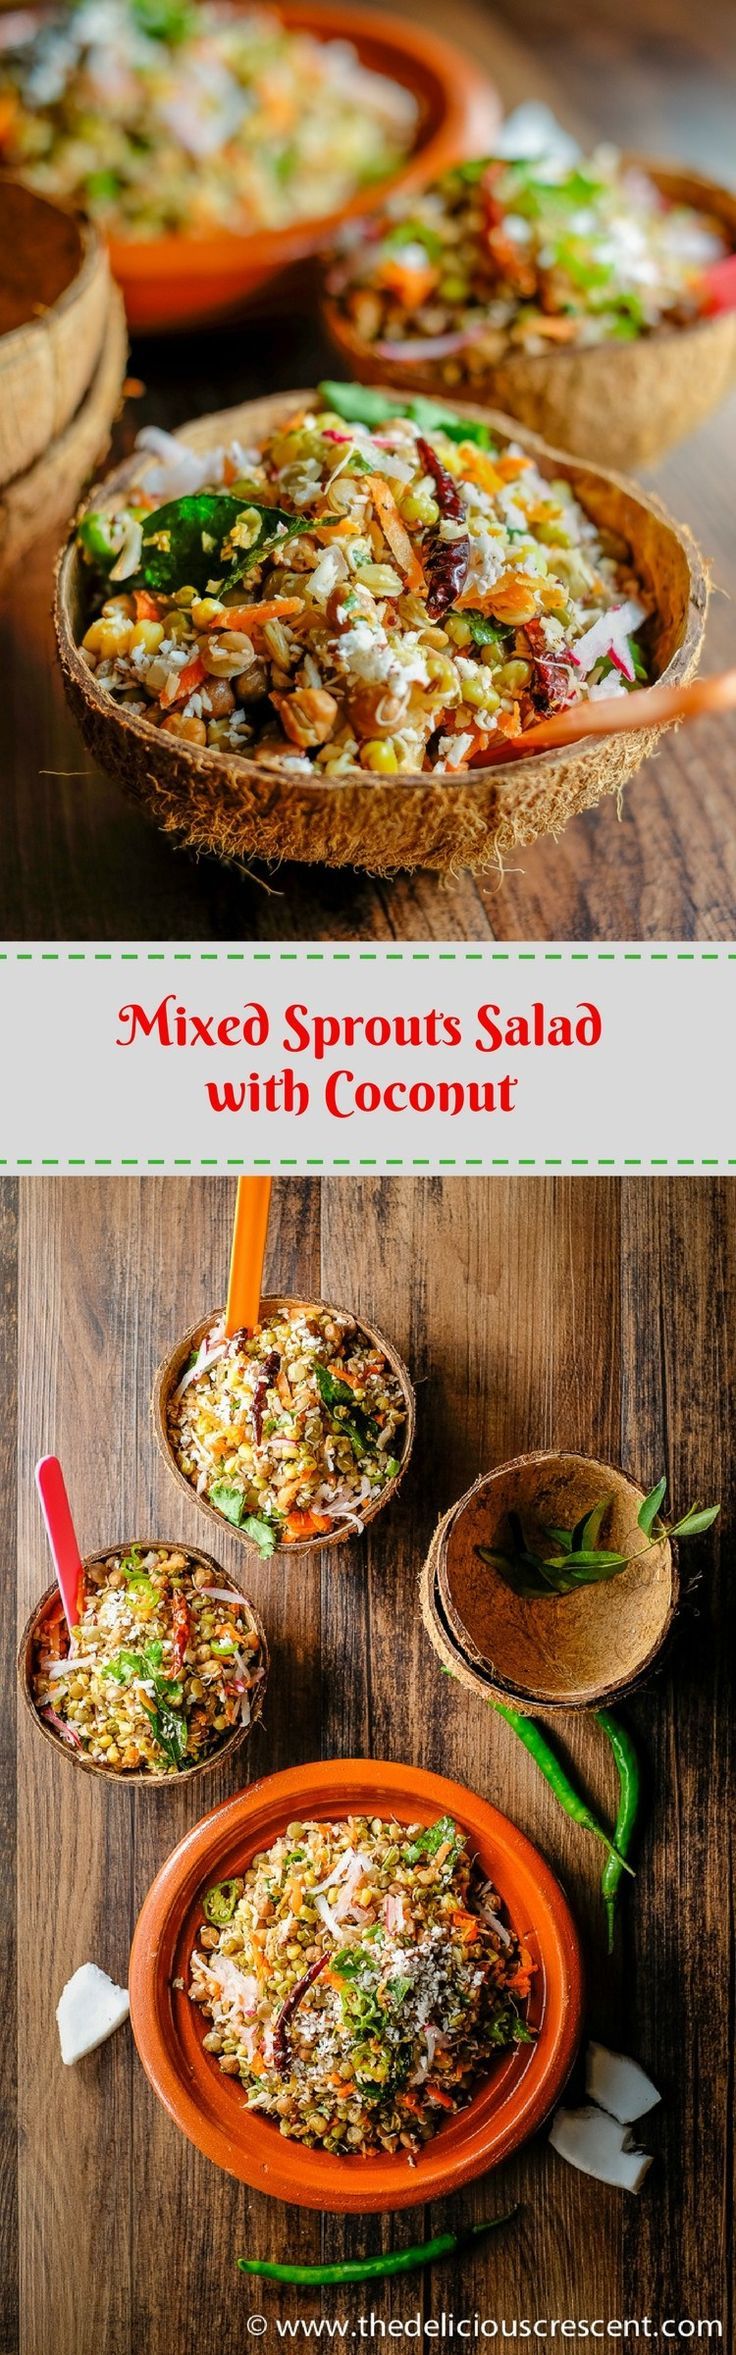 Mixed Sprouts Salad with Coconut, infused with Indian spices has a scrumptious earthy flavor. Sprouting makes the legumes super nutritious and more digestible. With high fiber and plant protein. Vegan and gluten free.